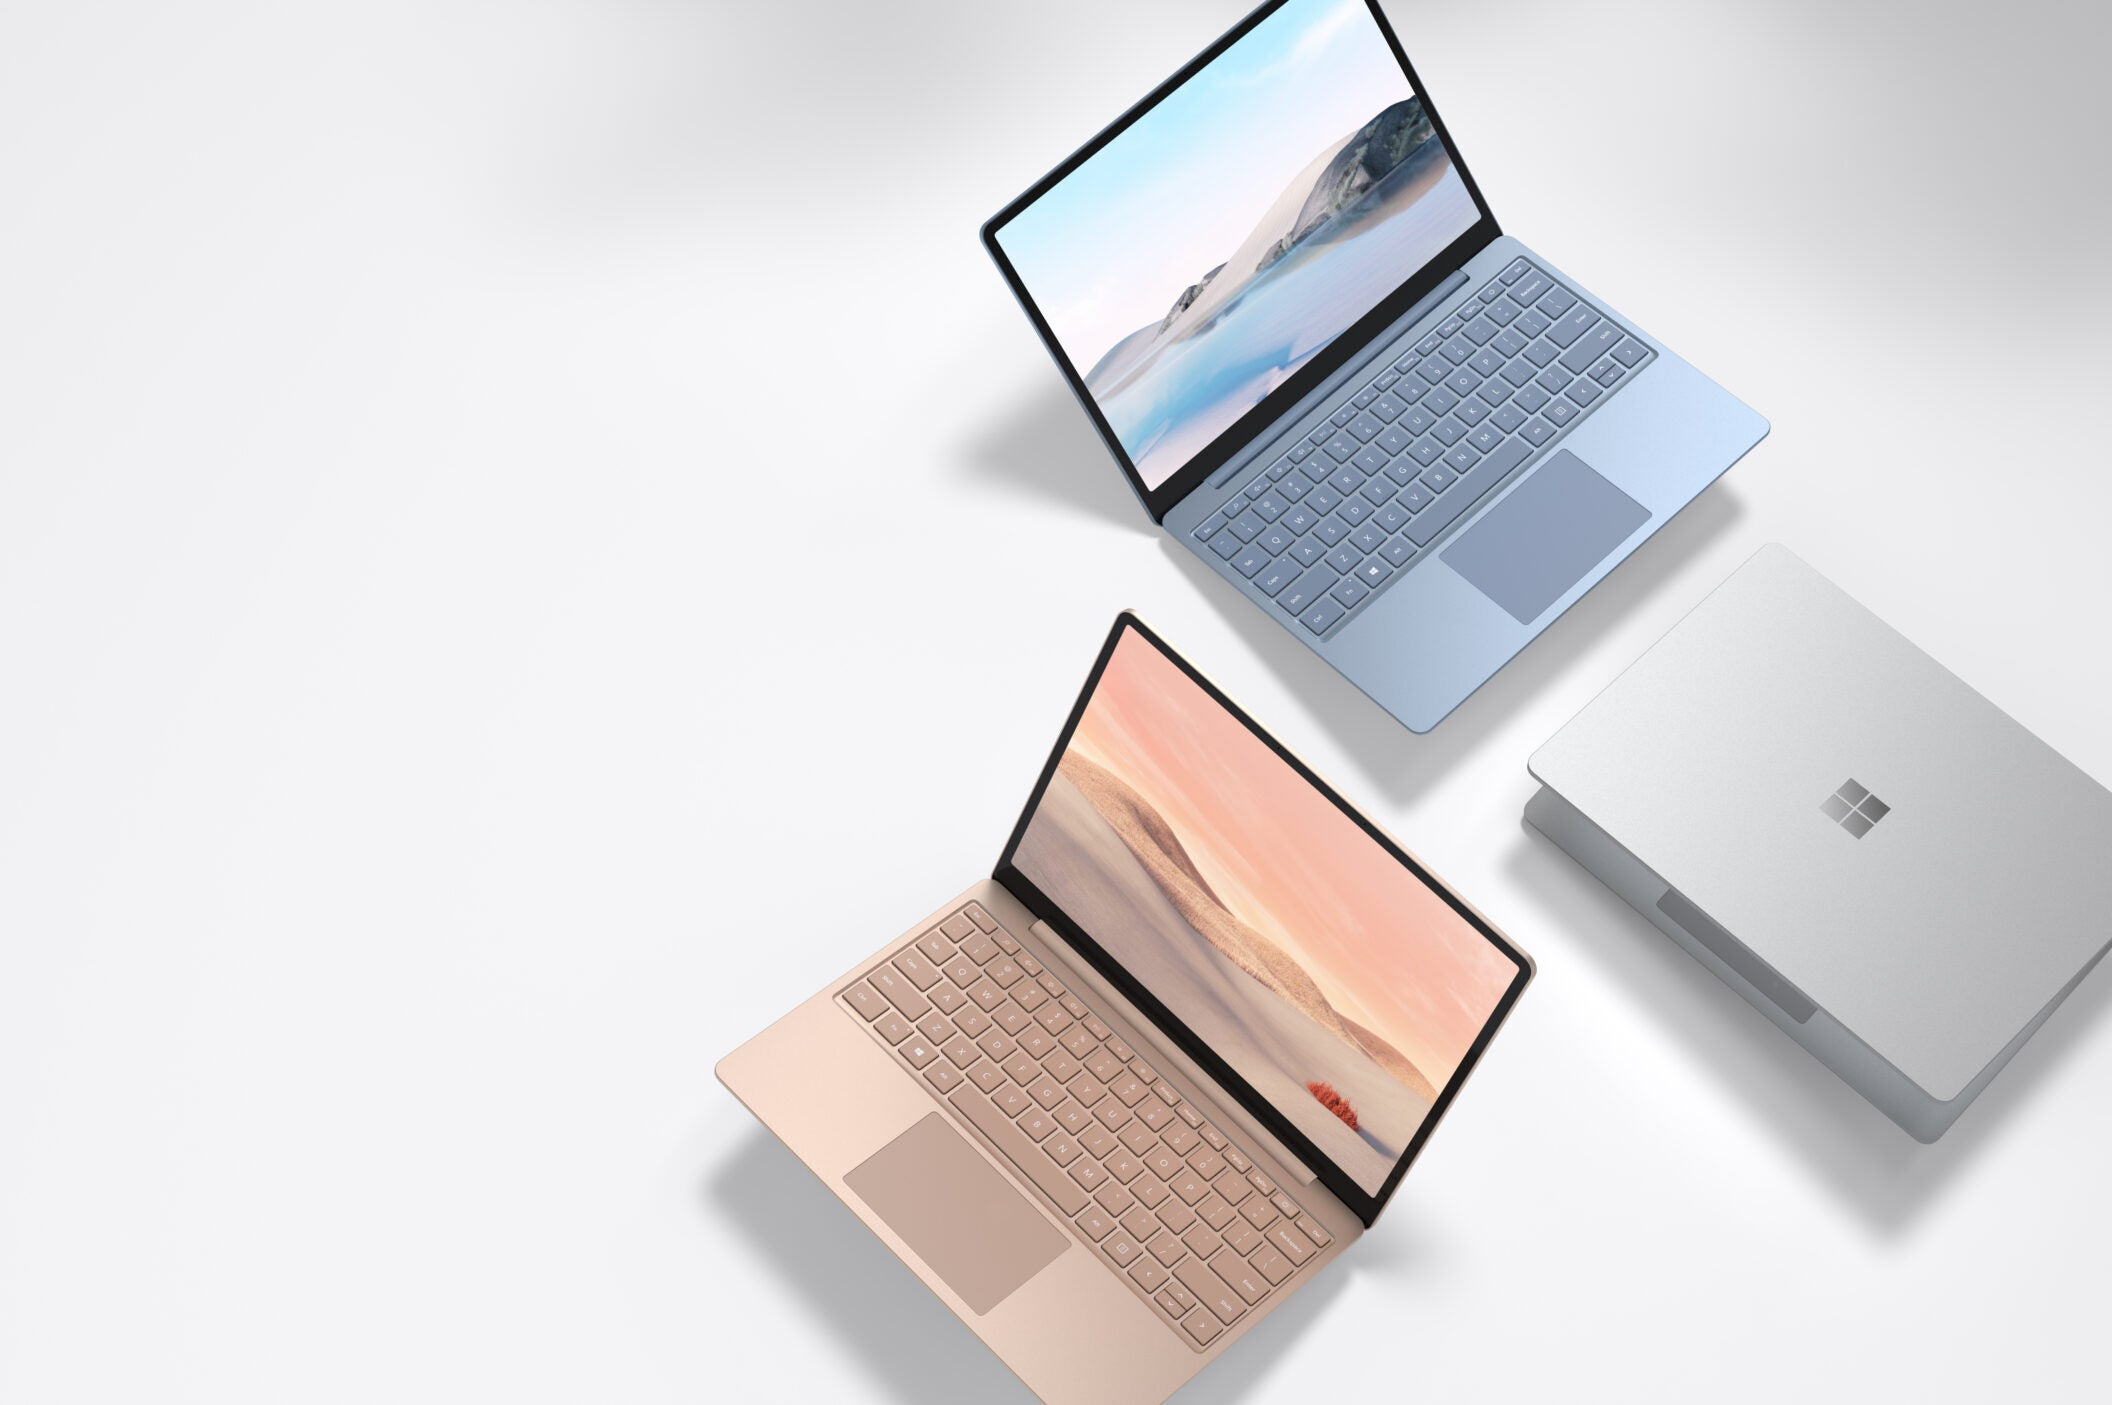 Microsoft Surface Laptop Go  New 2020  core i5,8,128...Sp Mới ra mắt